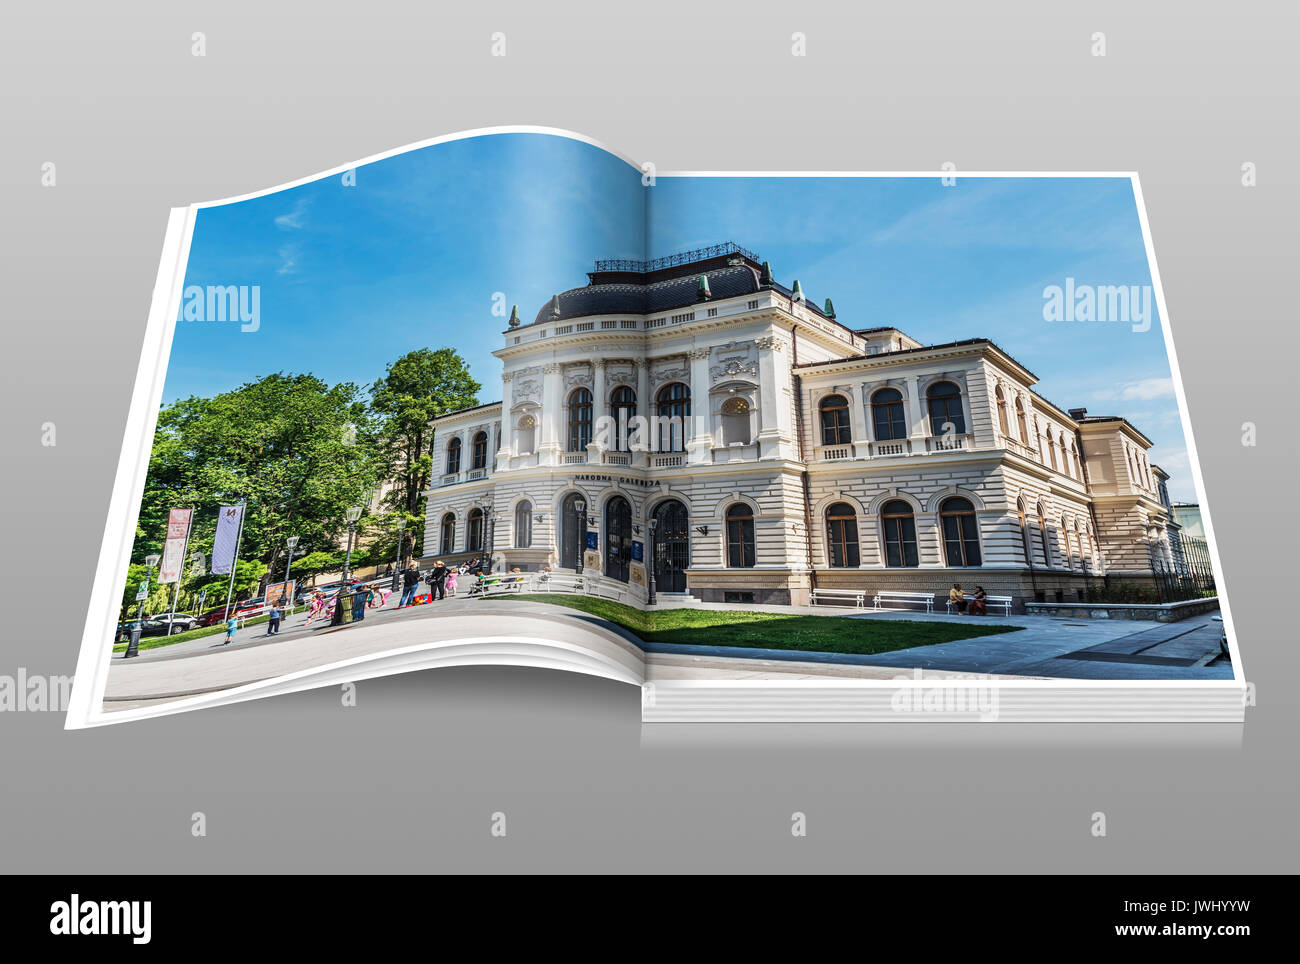 The National Gallery of Slovenia is an art museum for painting and sculptures, Ljubljana, Slovenia, Europe - Stock Image